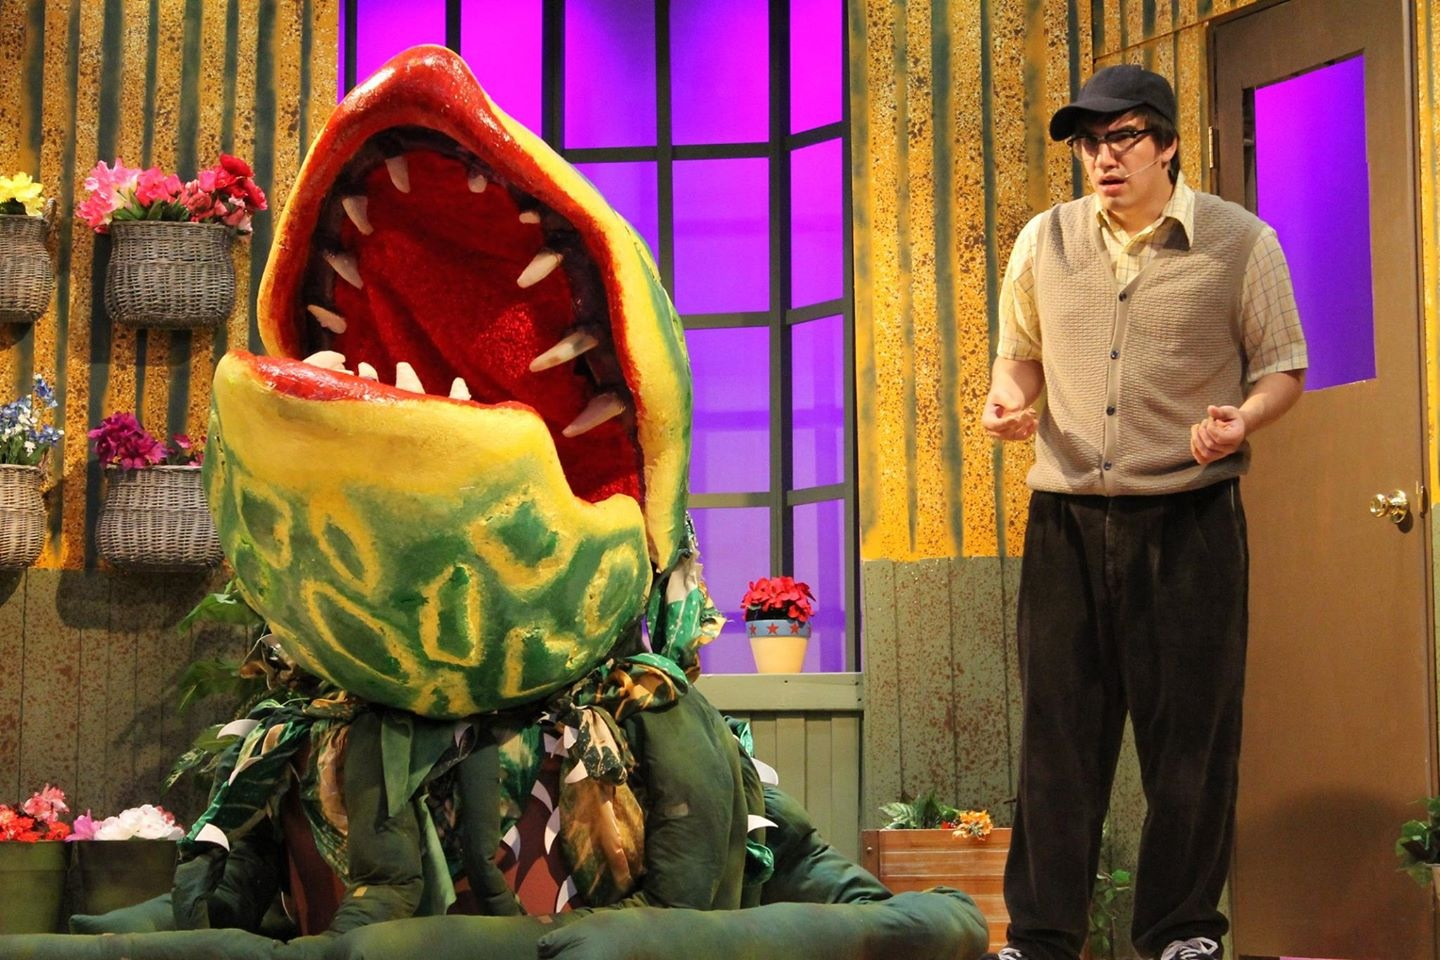 BWW Reviews: Inspiration Stage's LITTLE SHOP OF HORRORS is a Bloody, Good Show